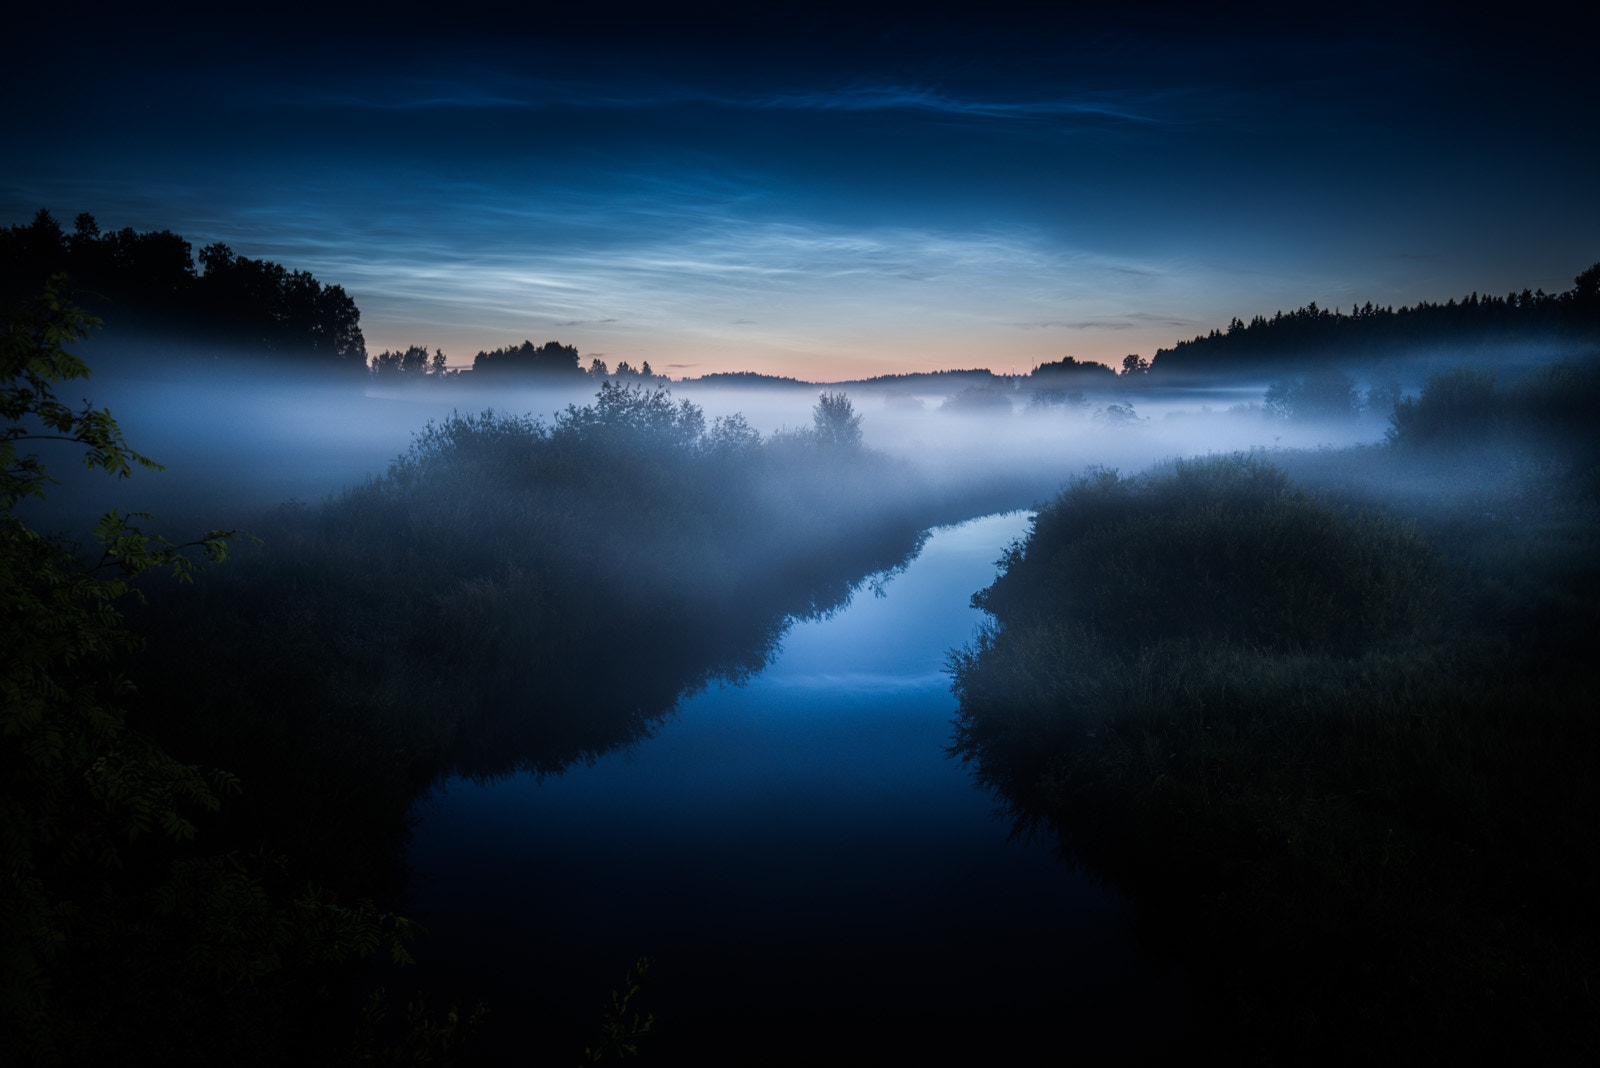 Photograph Noctilucent Clouds by Mikko Lagerstedt on 500px